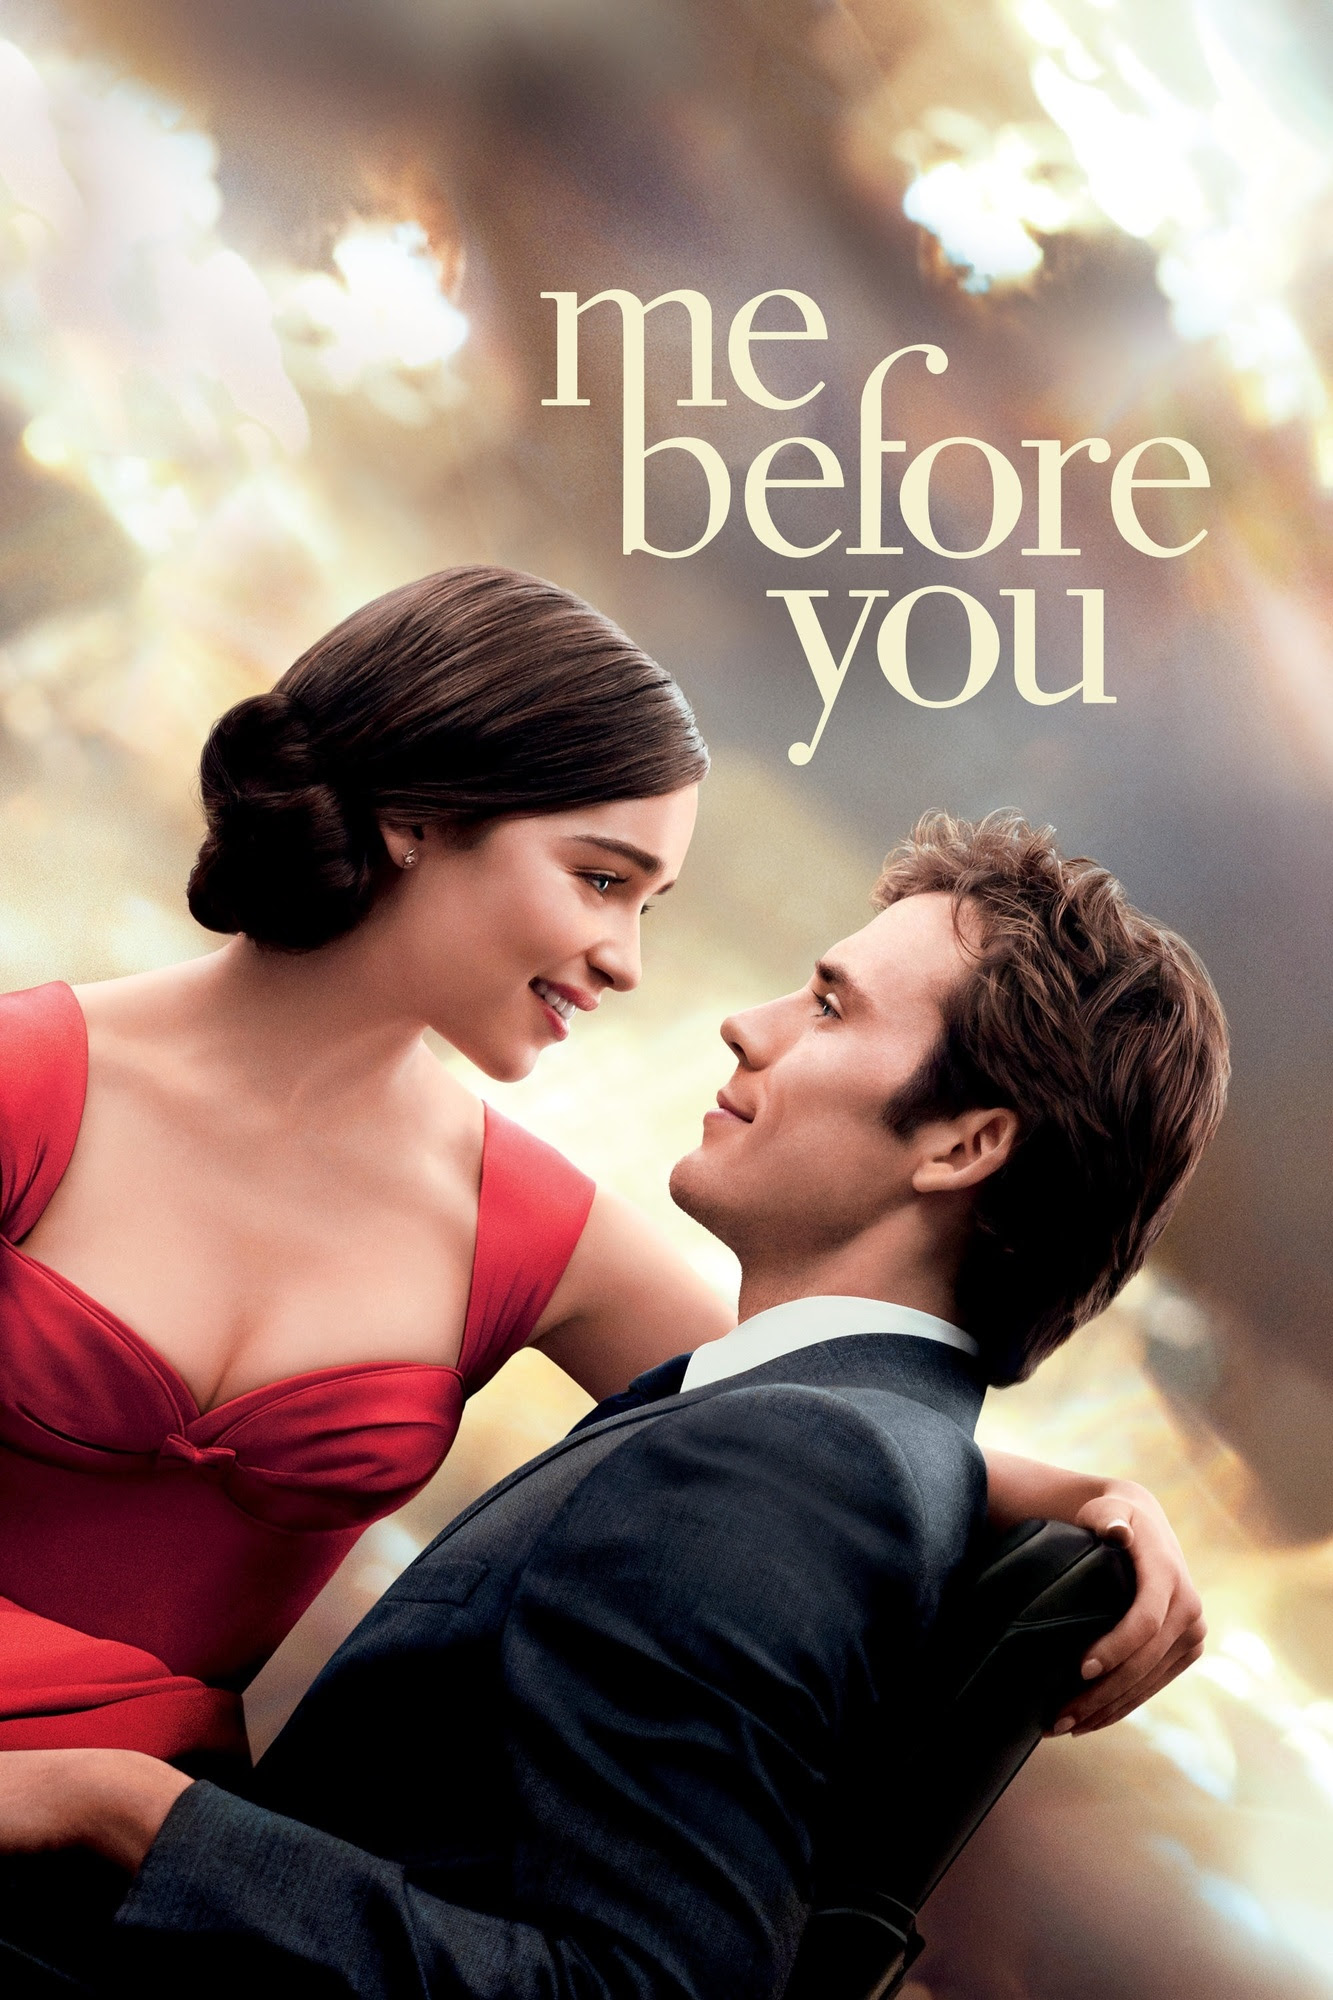 Image result for me before you movie poster